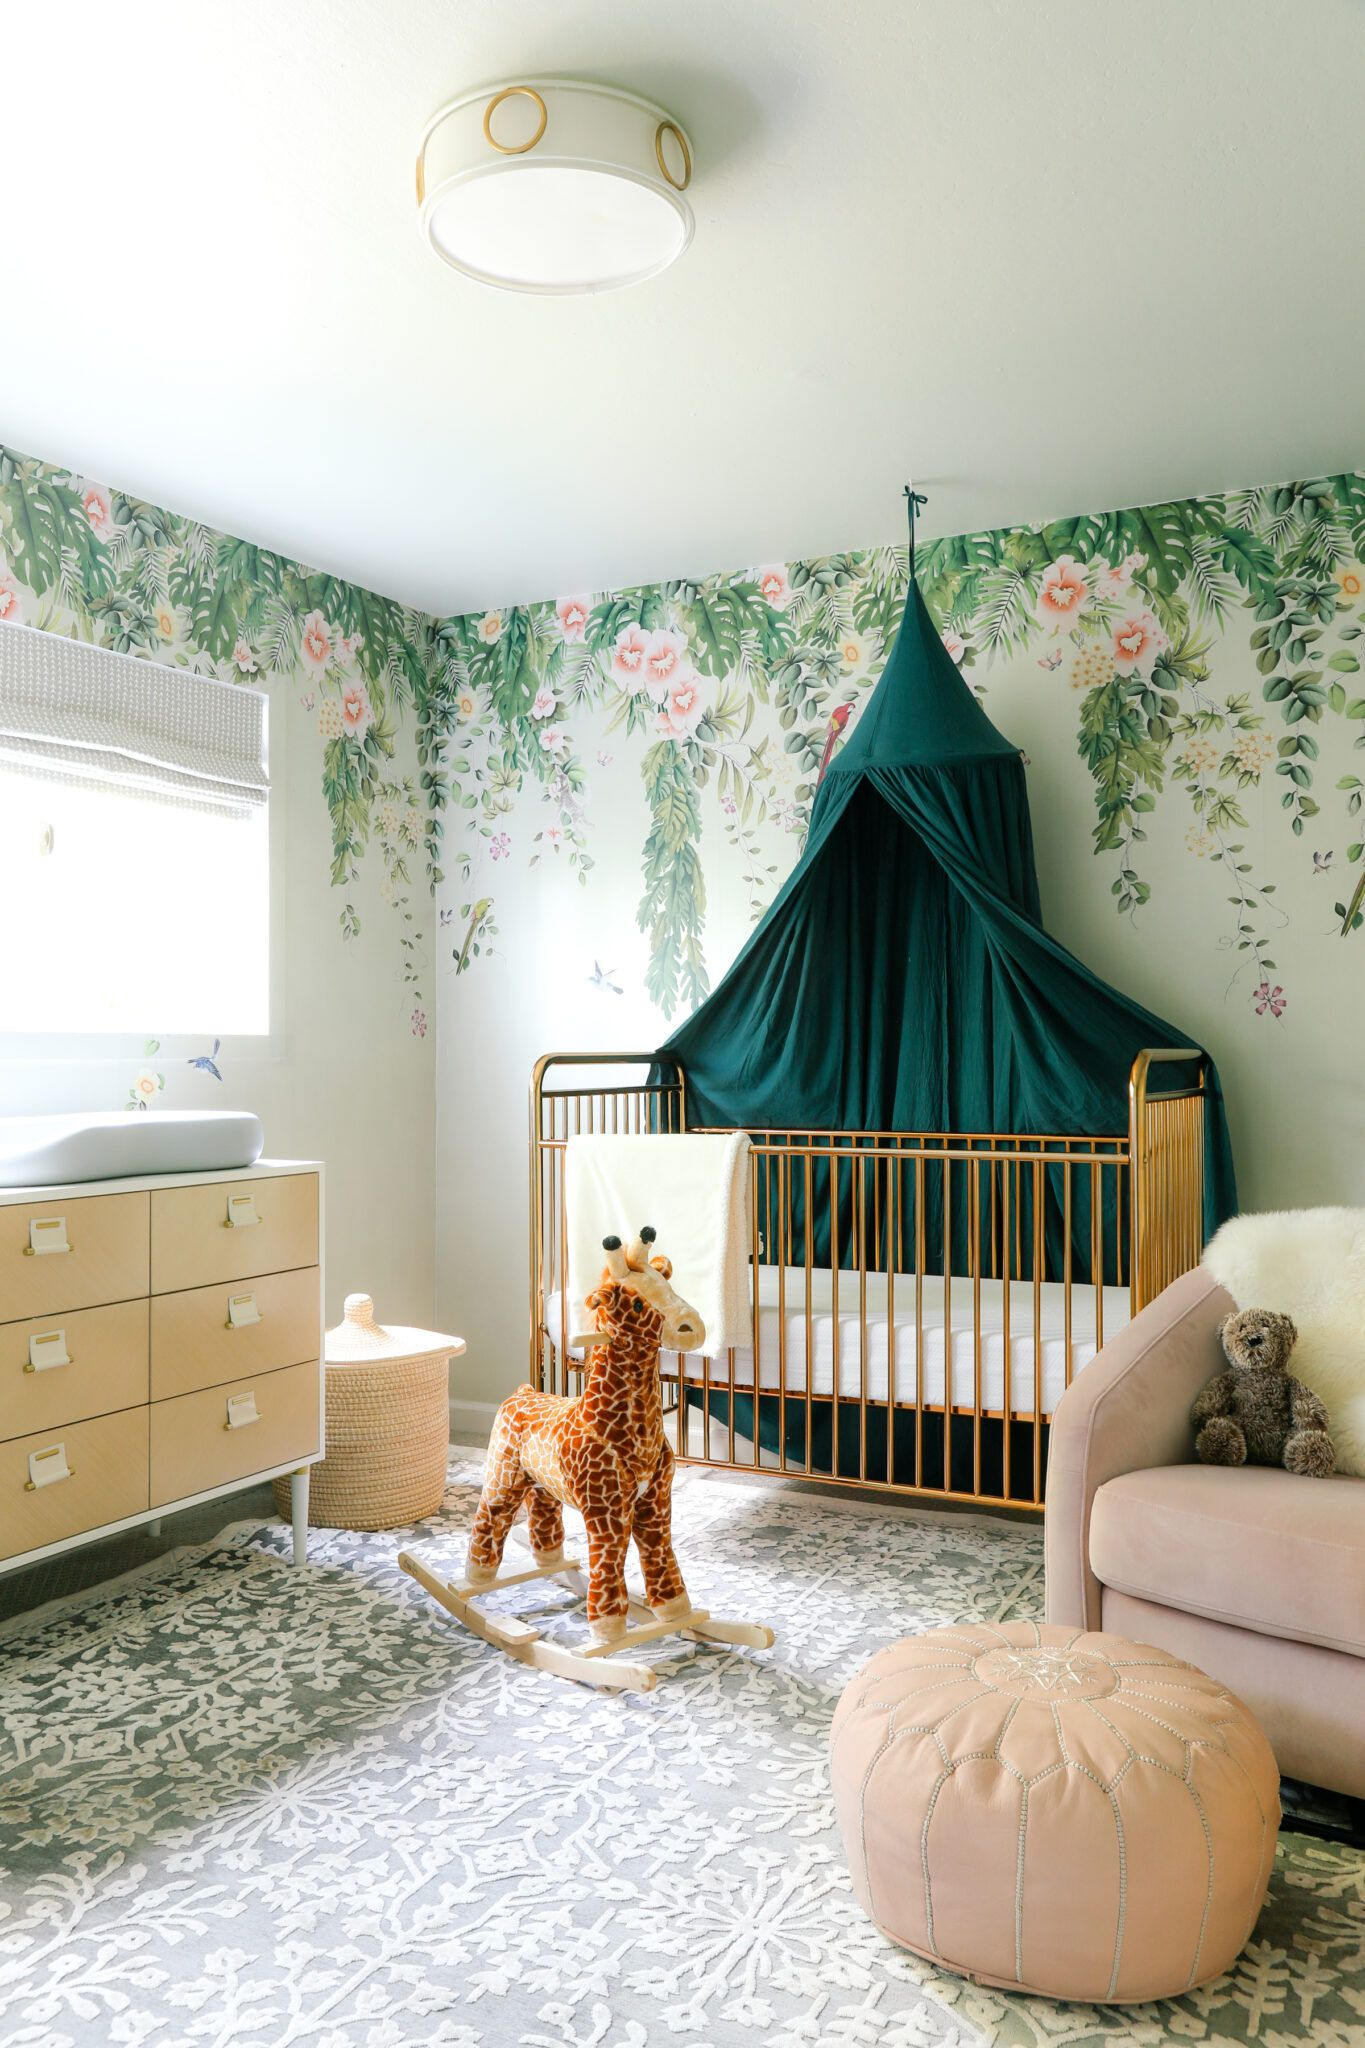 12 Chic Nursery Design Ideas That Age With A Little One